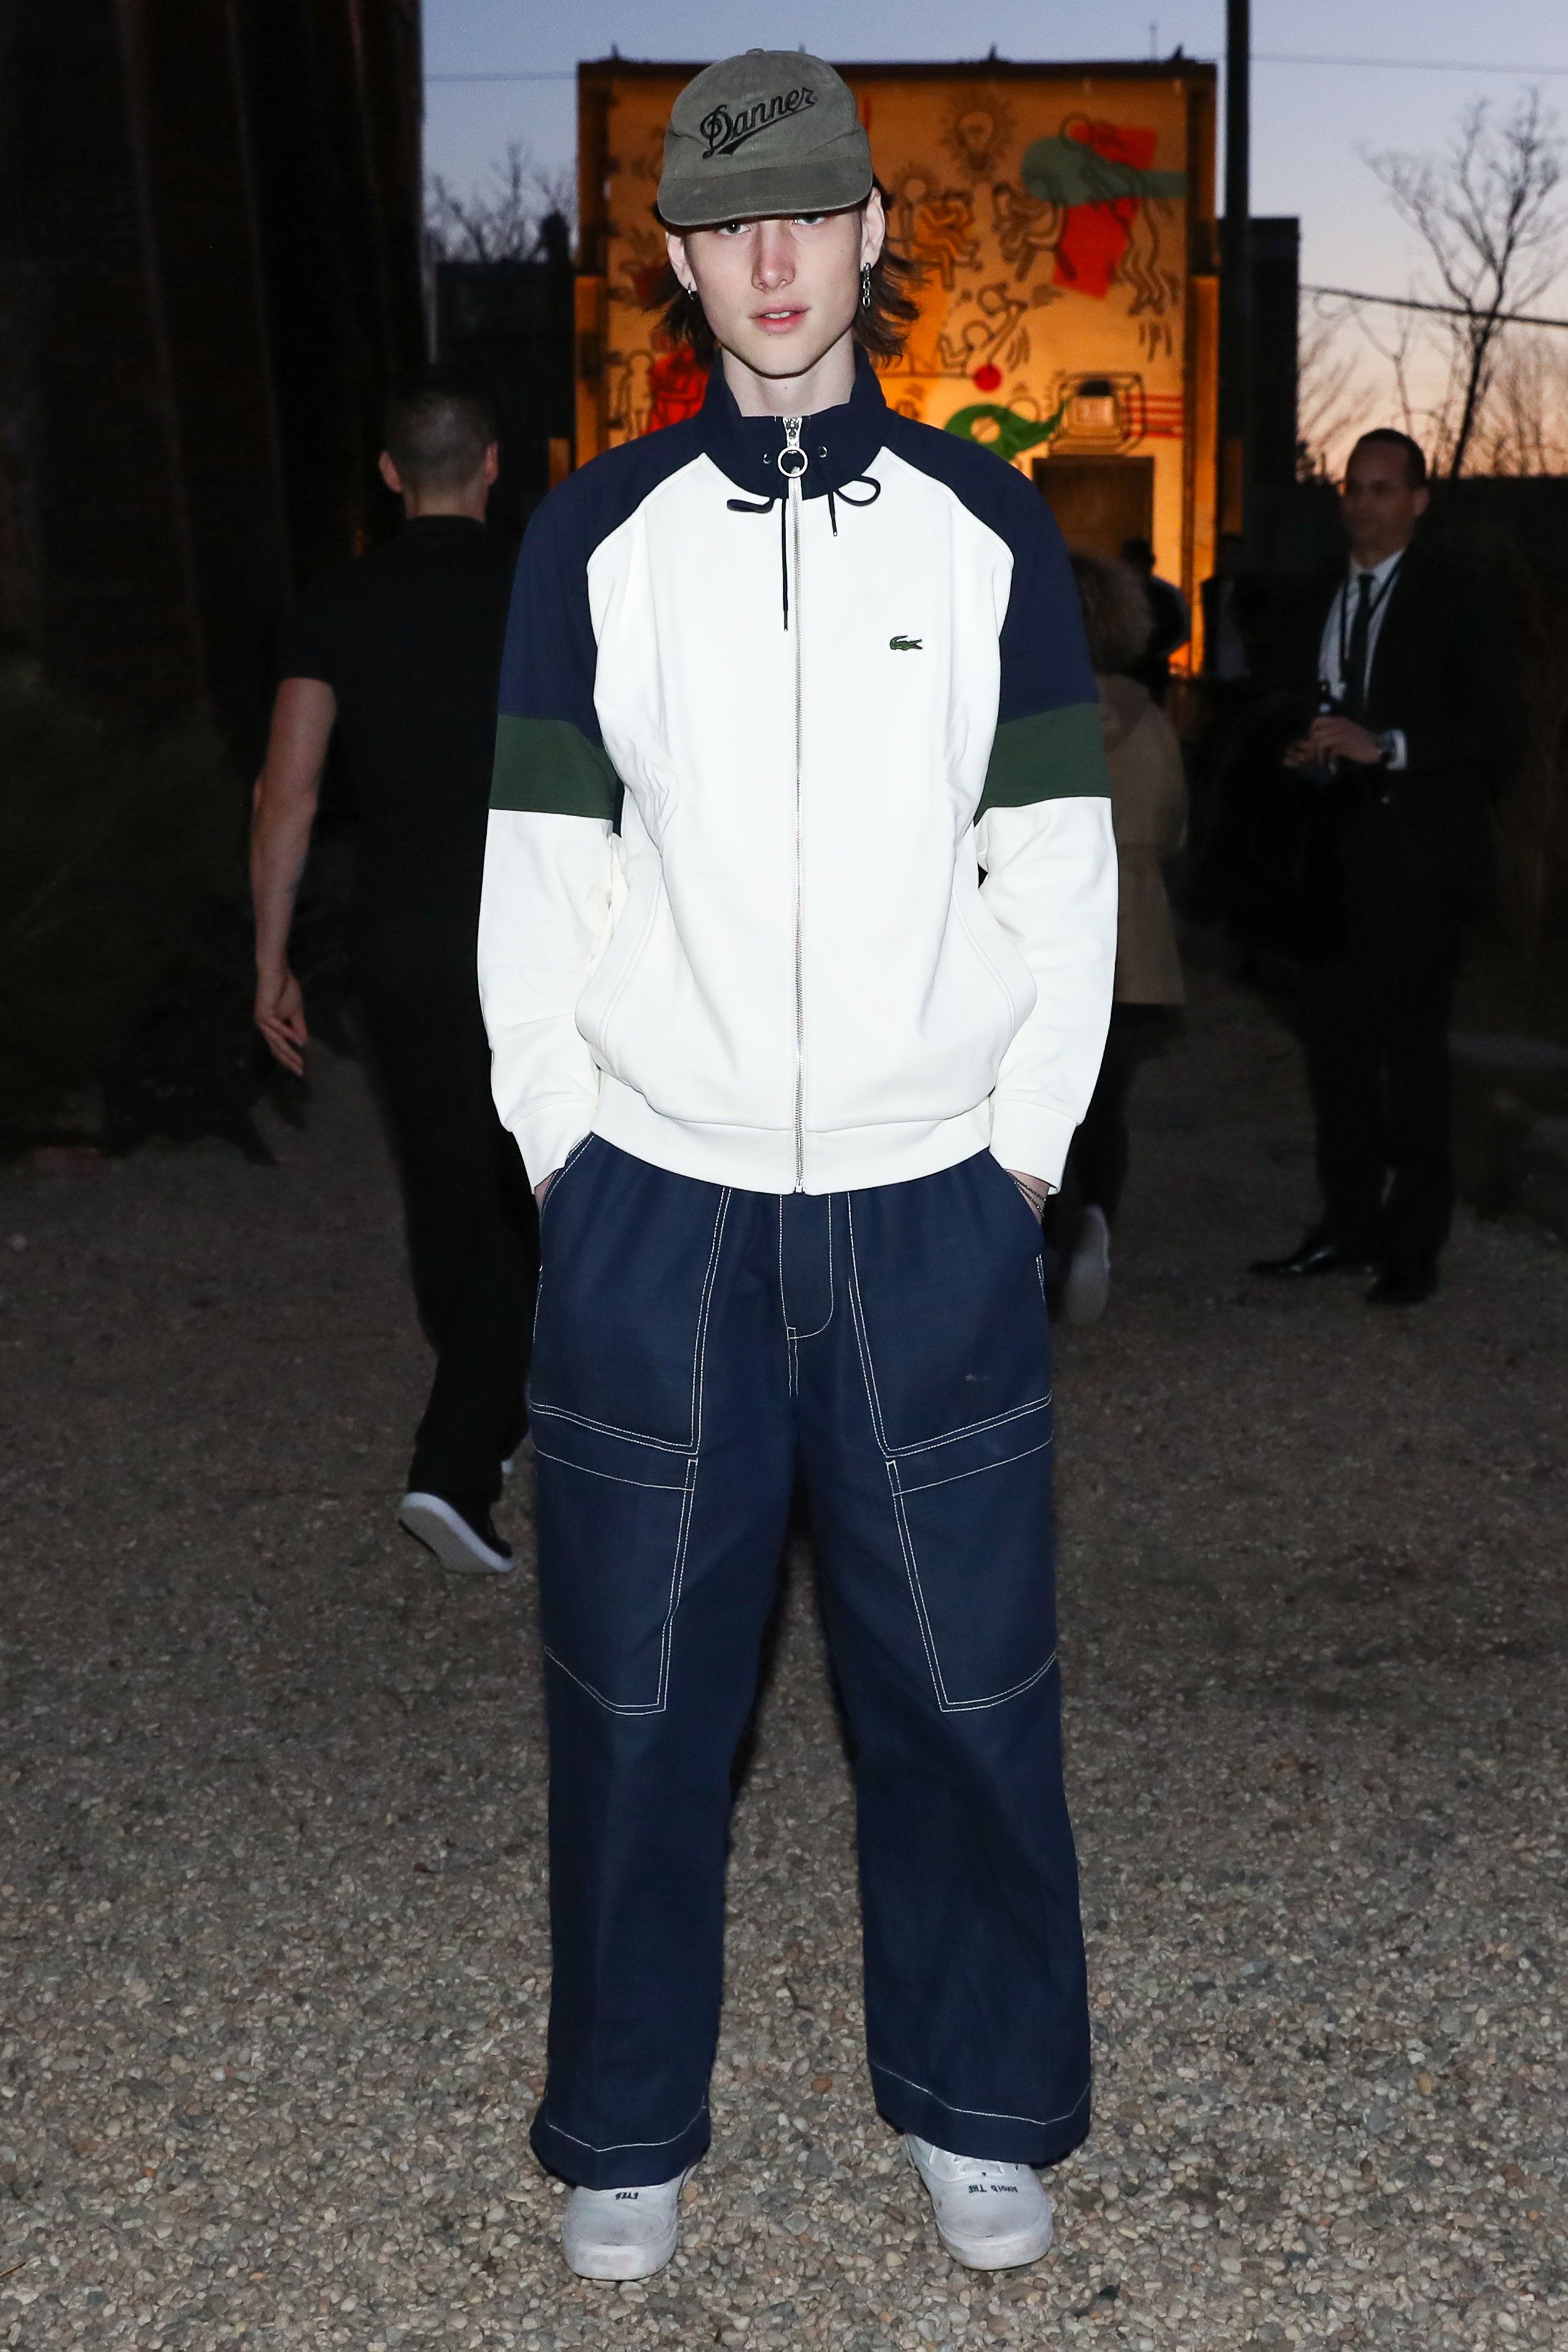 Wellington Grant attends The Lacoste x Keith Haring Global Launch Party at Pioneer Works on Tuesday, March 26th, 2019. Photographed by Neil Rasmus/BFA.